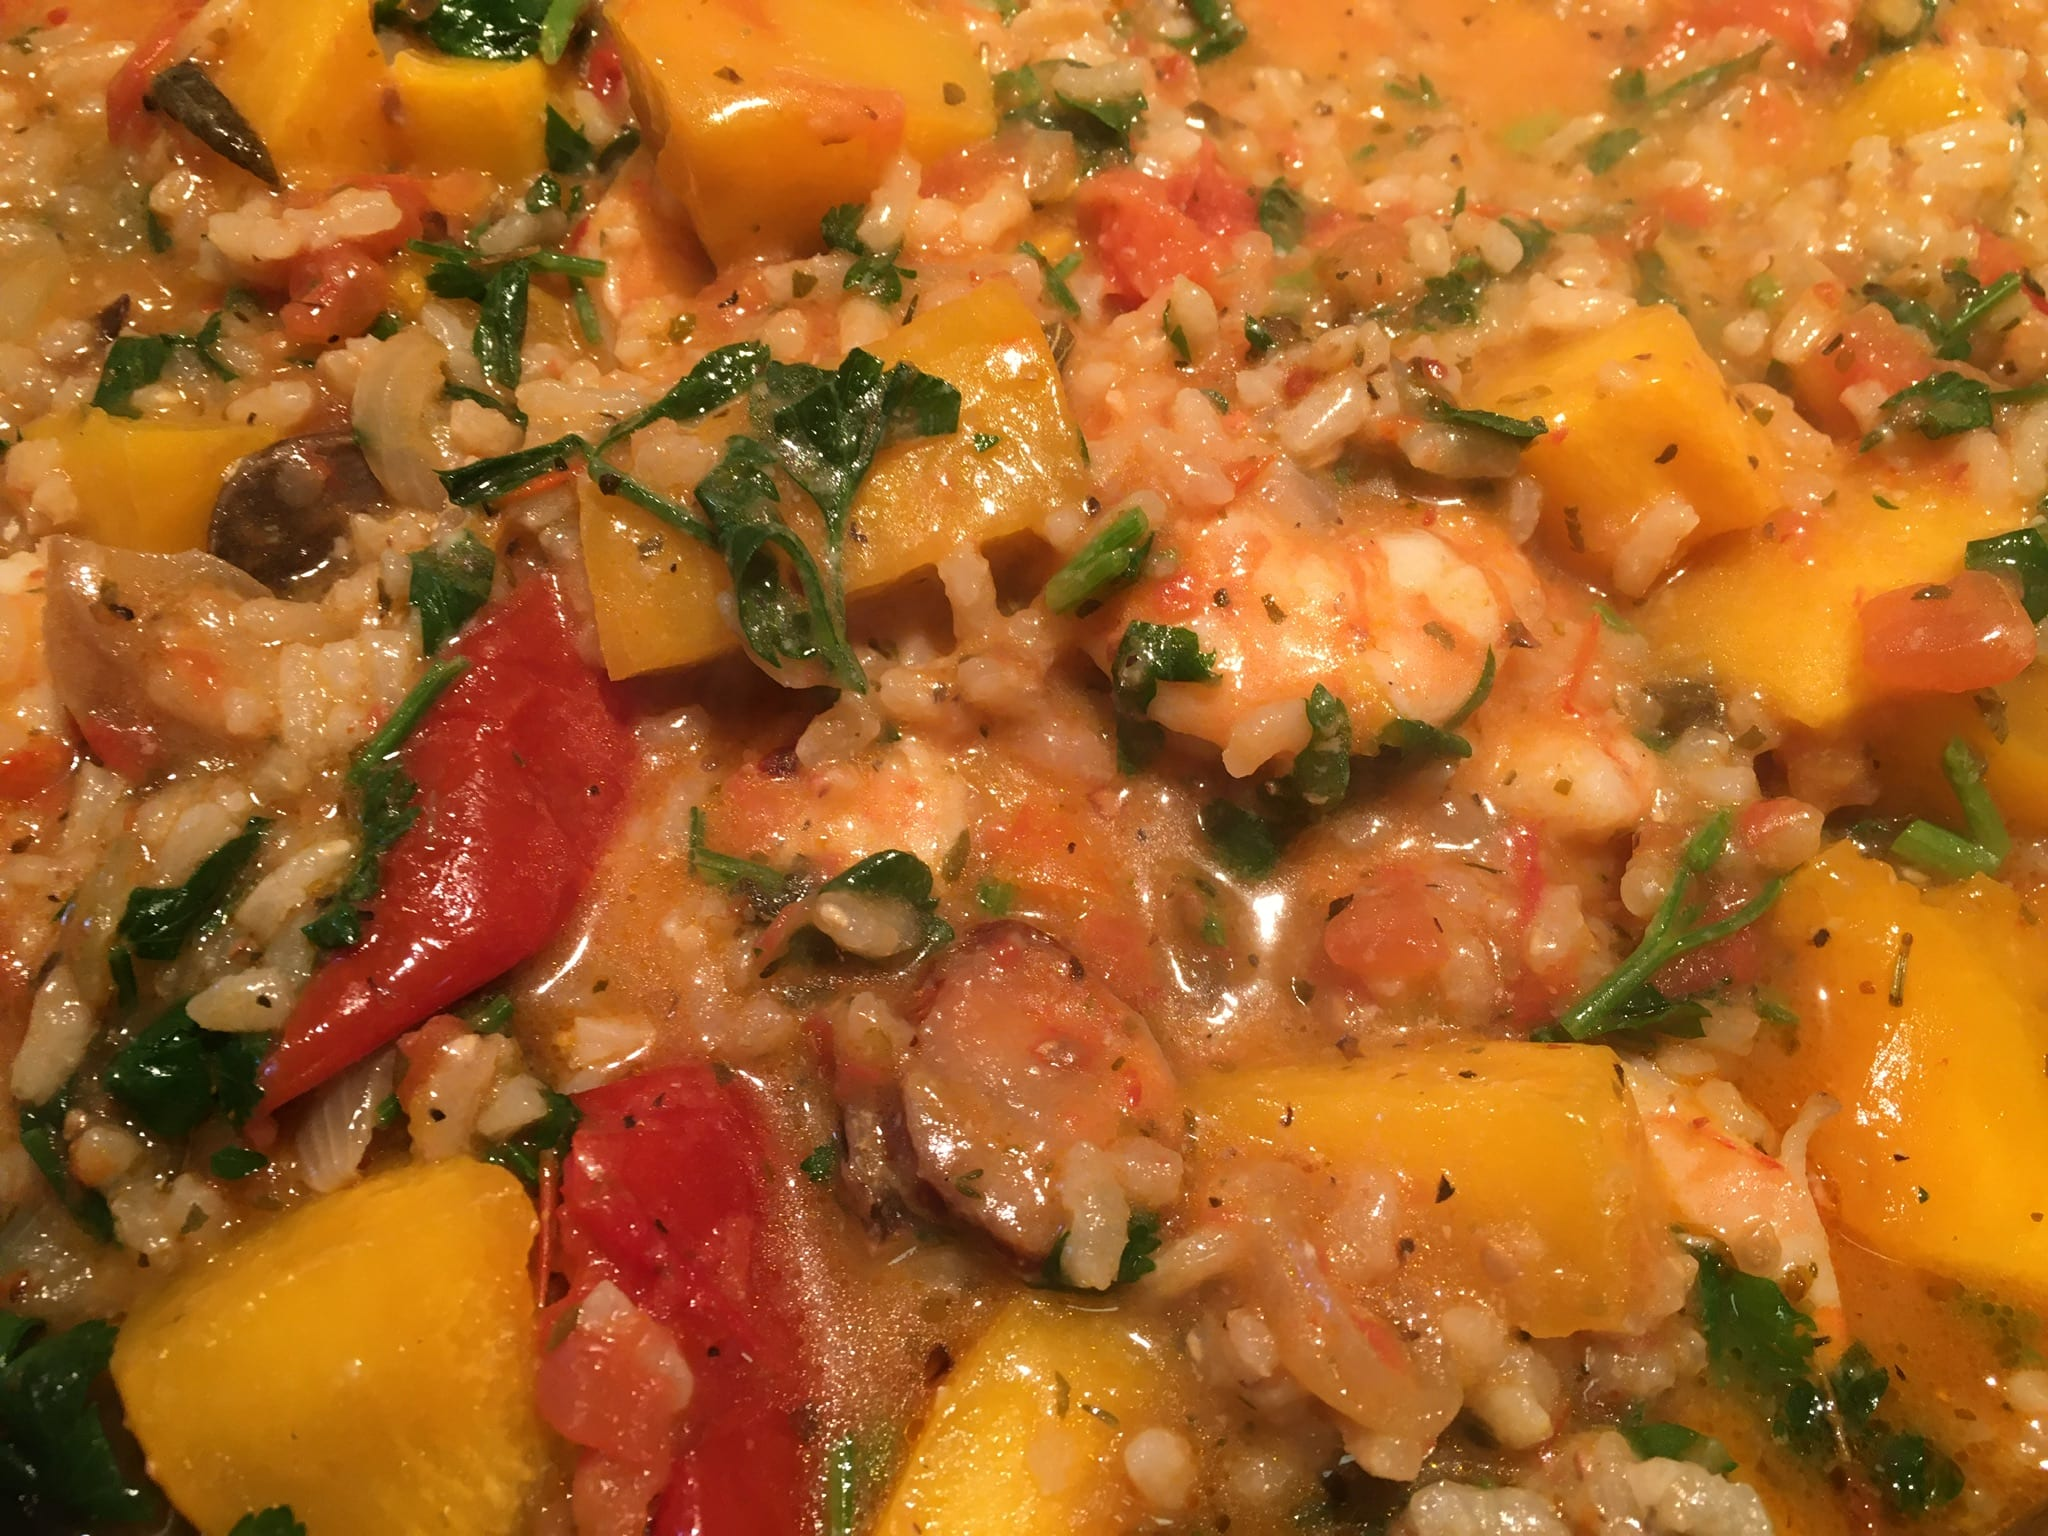 Roasted Pumpkin Risotto with Shrimp